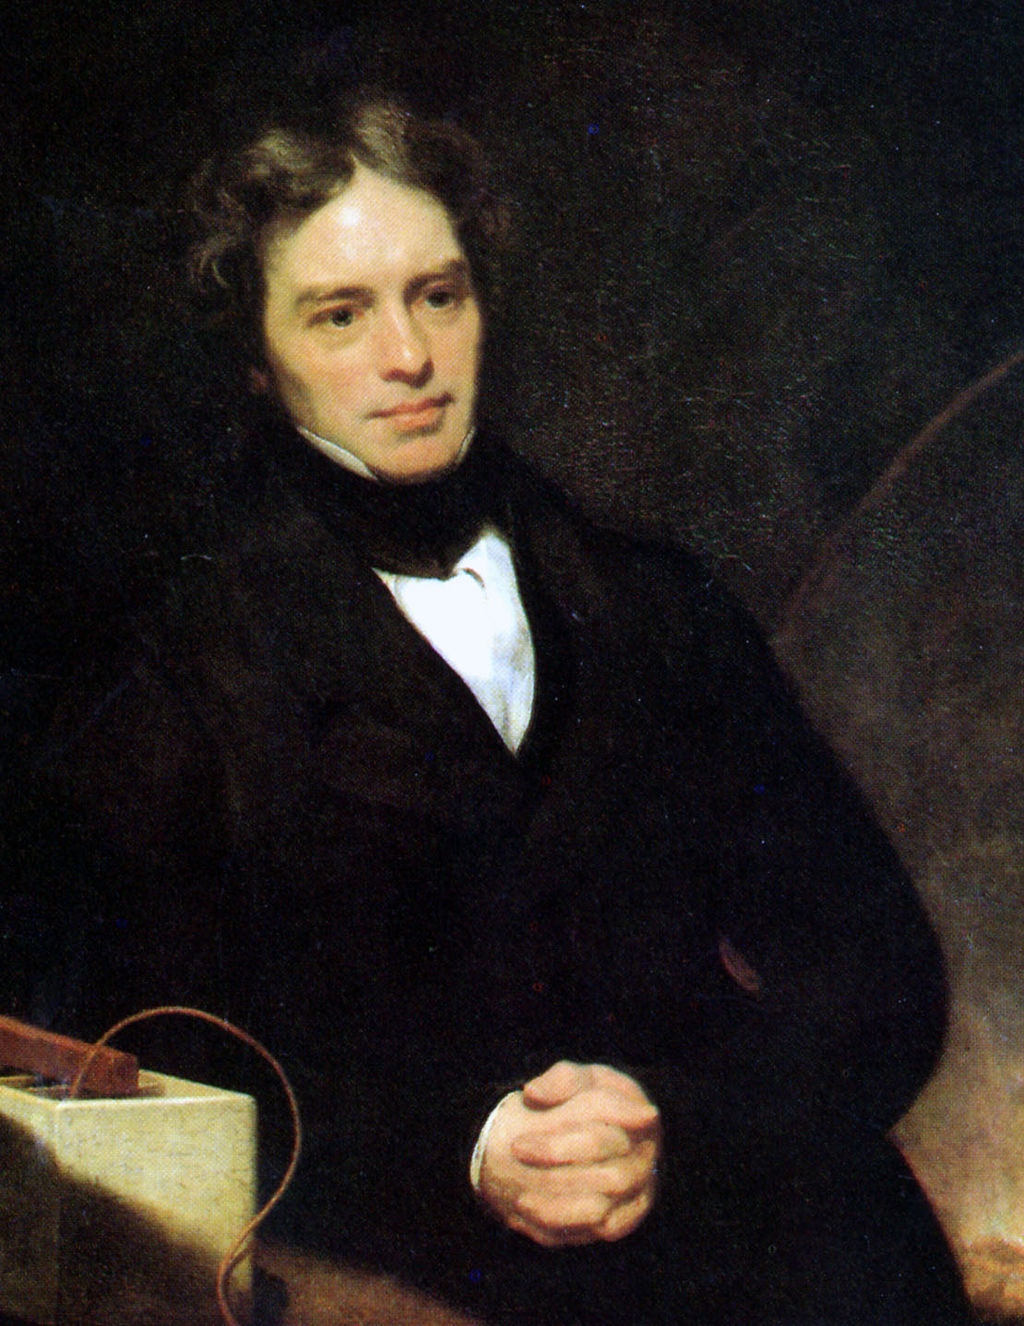 1024px-M_Faraday_Th_Phillips_oil_1842